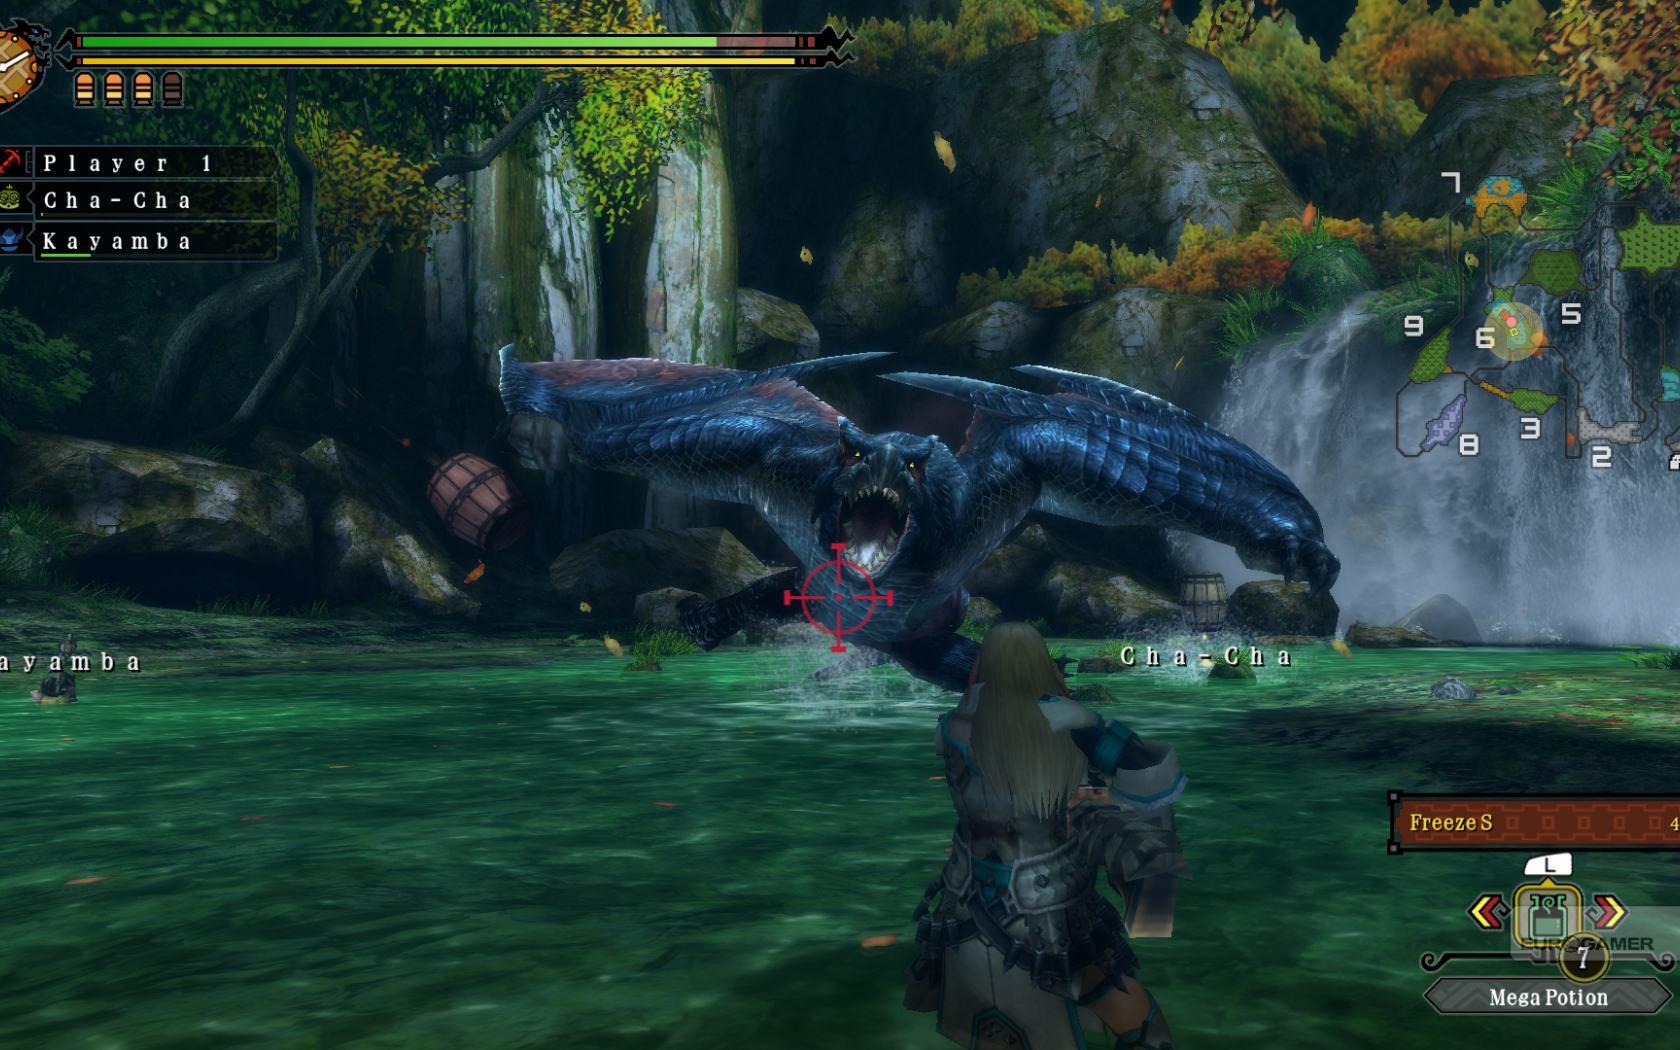 Free Download This Monster Hunter 3 Ultimate Wallpaper Is